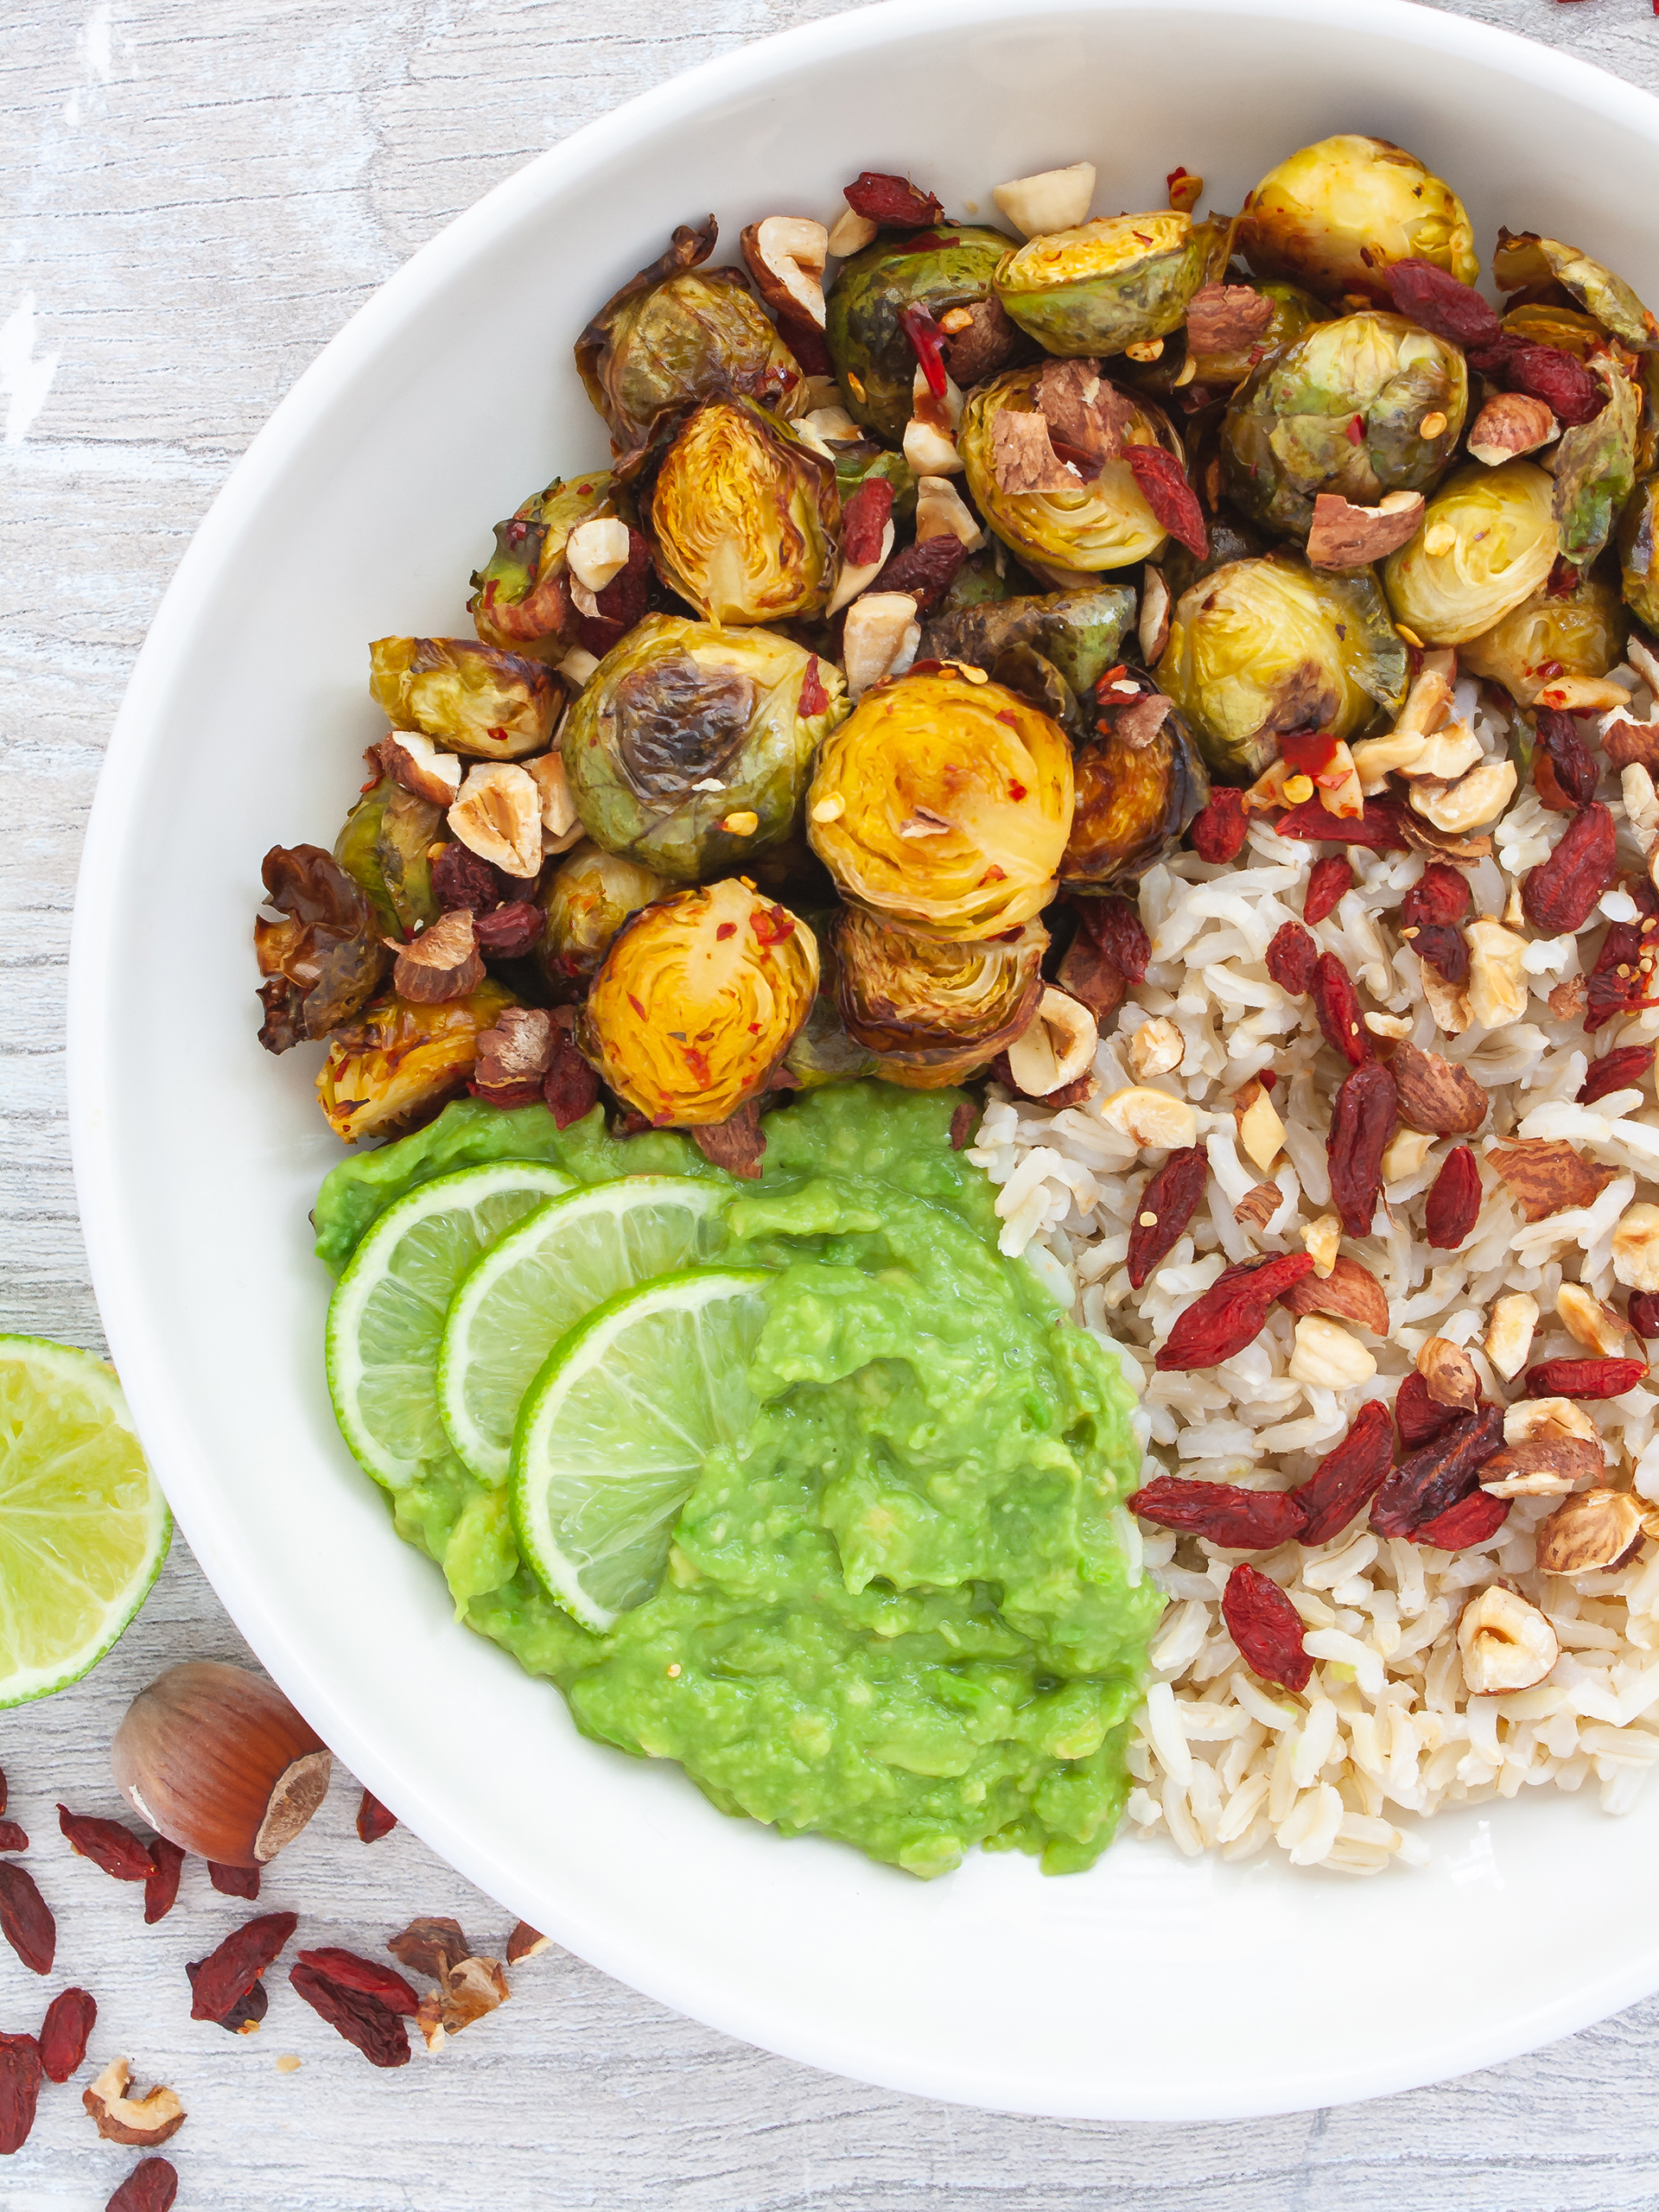 Chili Lime Roasted Brussel Sprouts with Avocado Dressing  Thumbnail